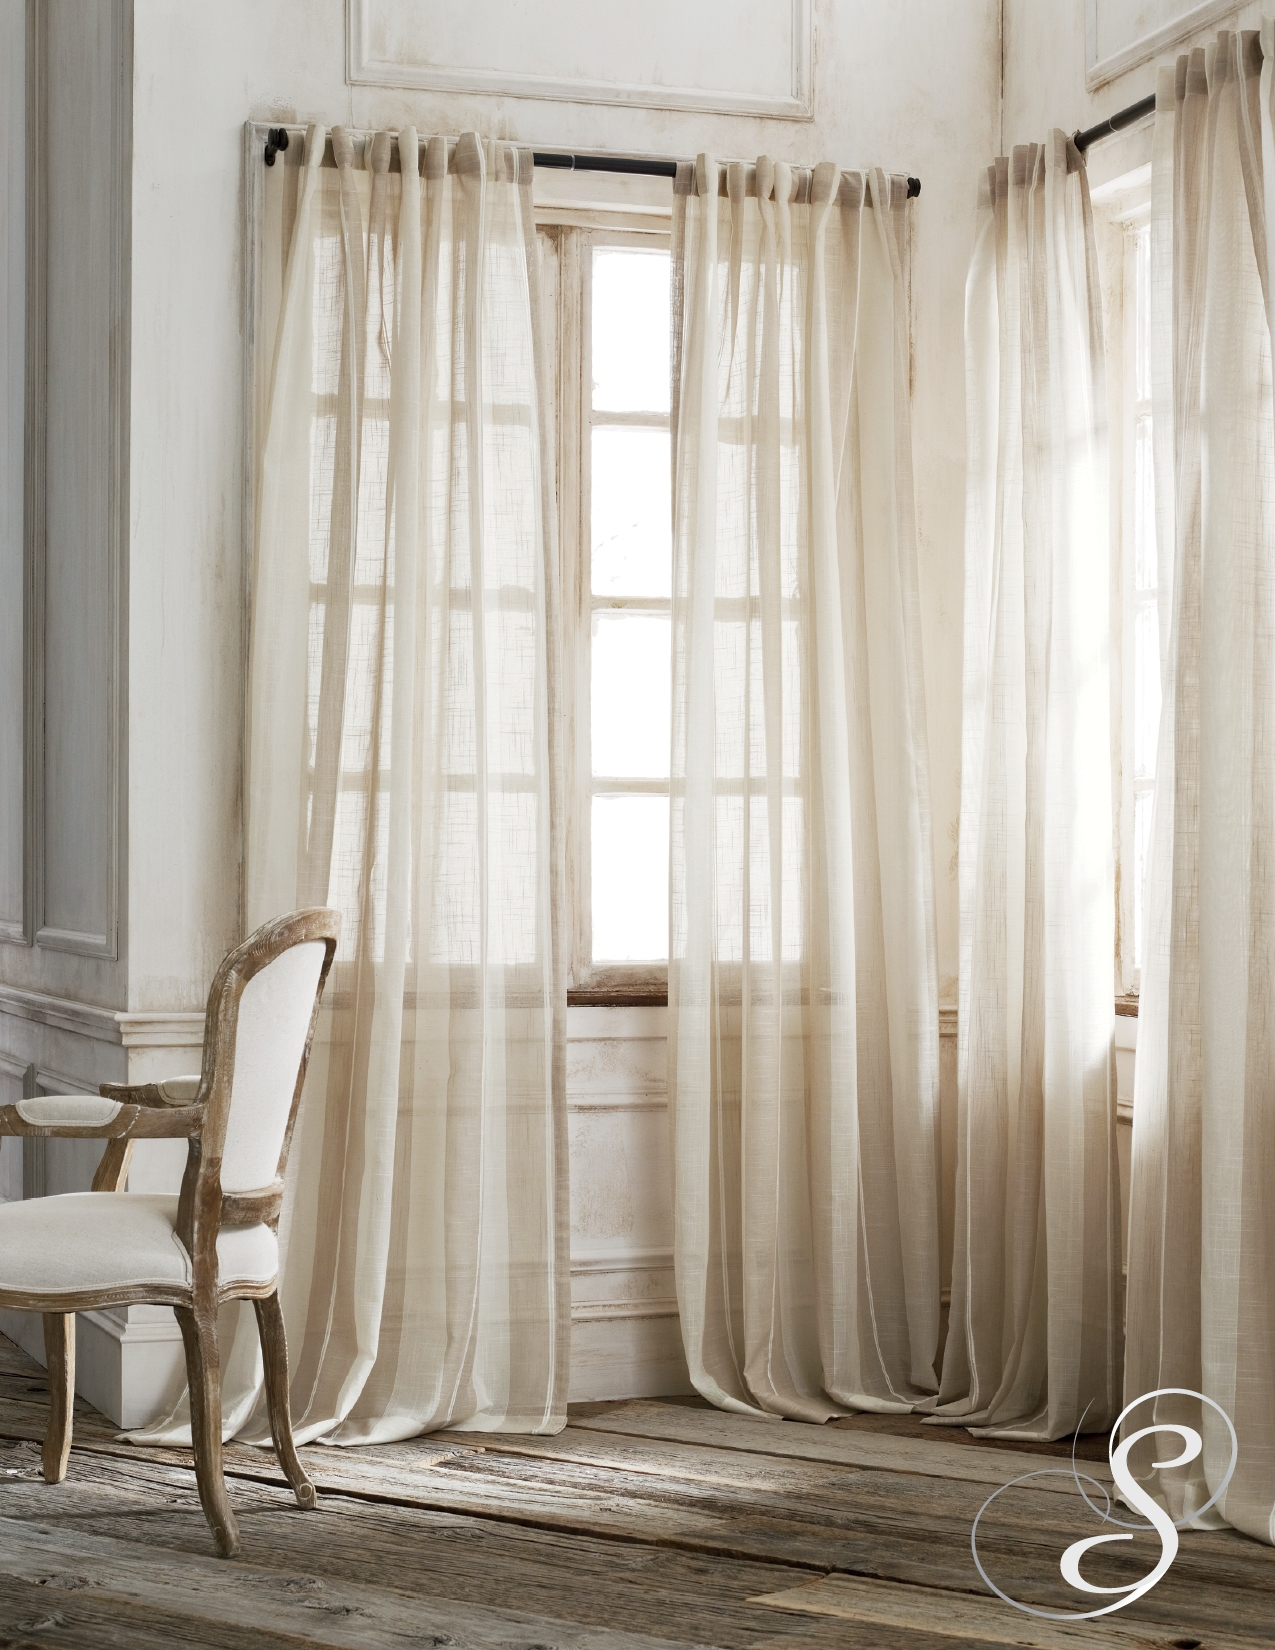 Homey Sheer Curtains For Front Door Windows And Sheer Curtain Within Linen Gauze Curtains (View 2 of 15)